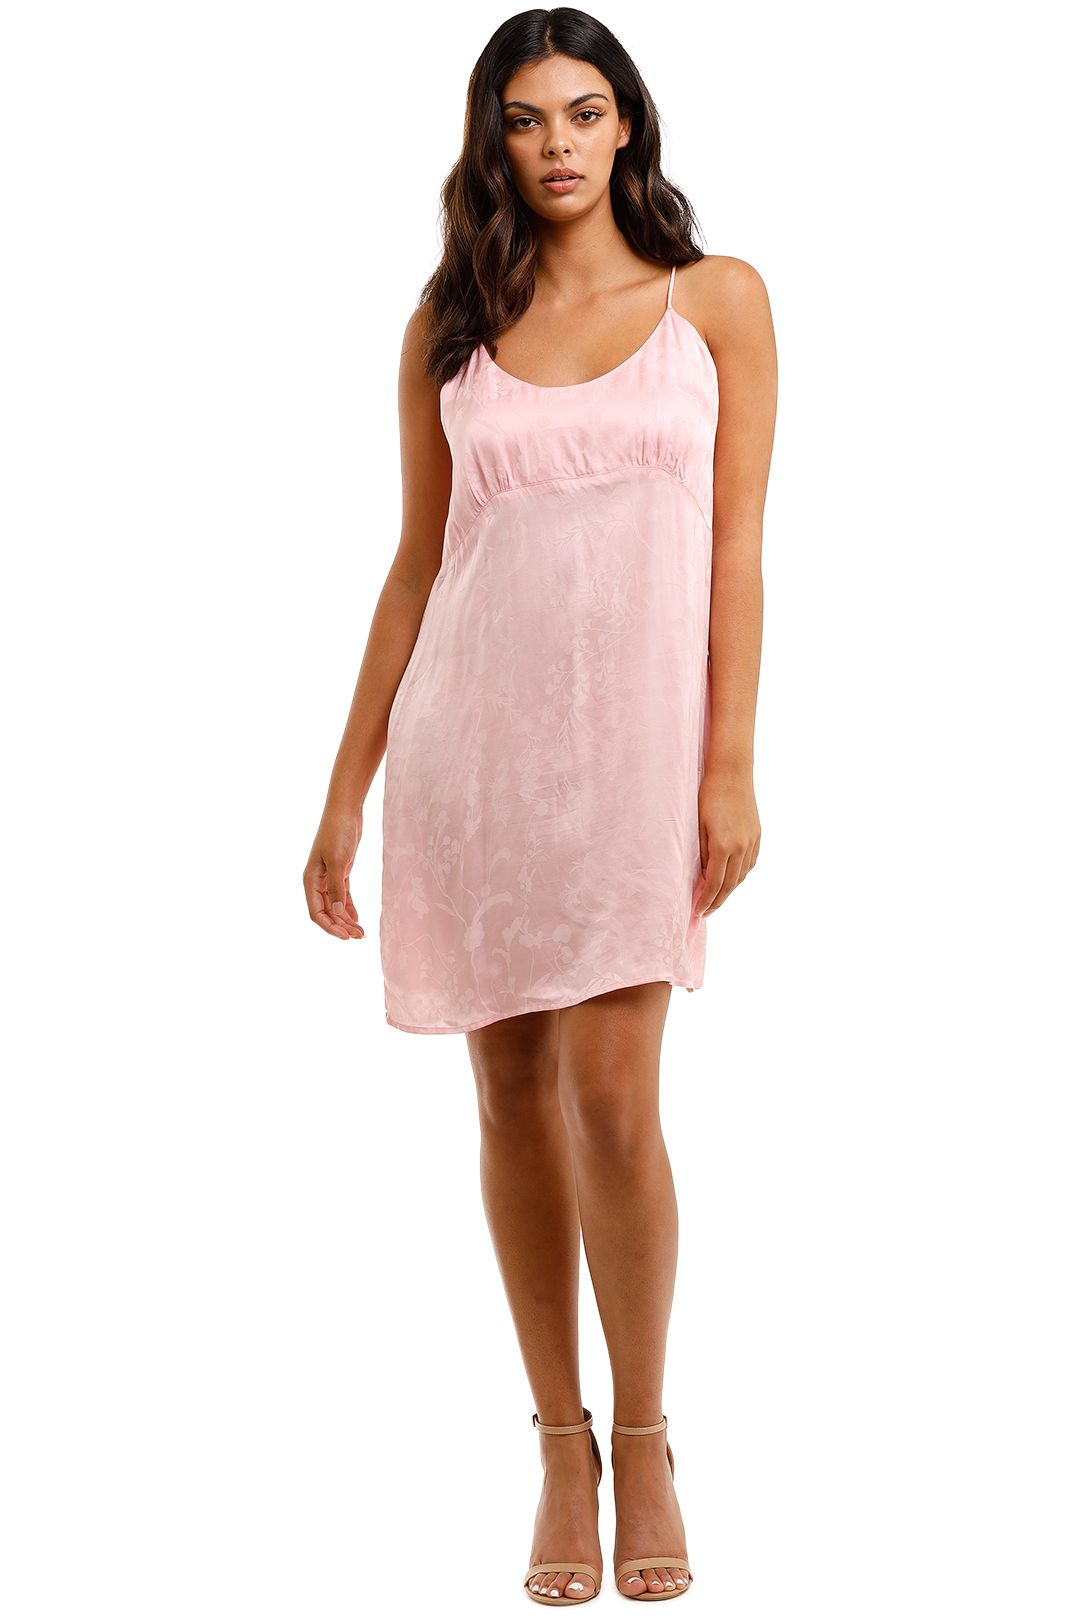 Spell Verona Mini Slip Dress 90s Pink Scoop Neck